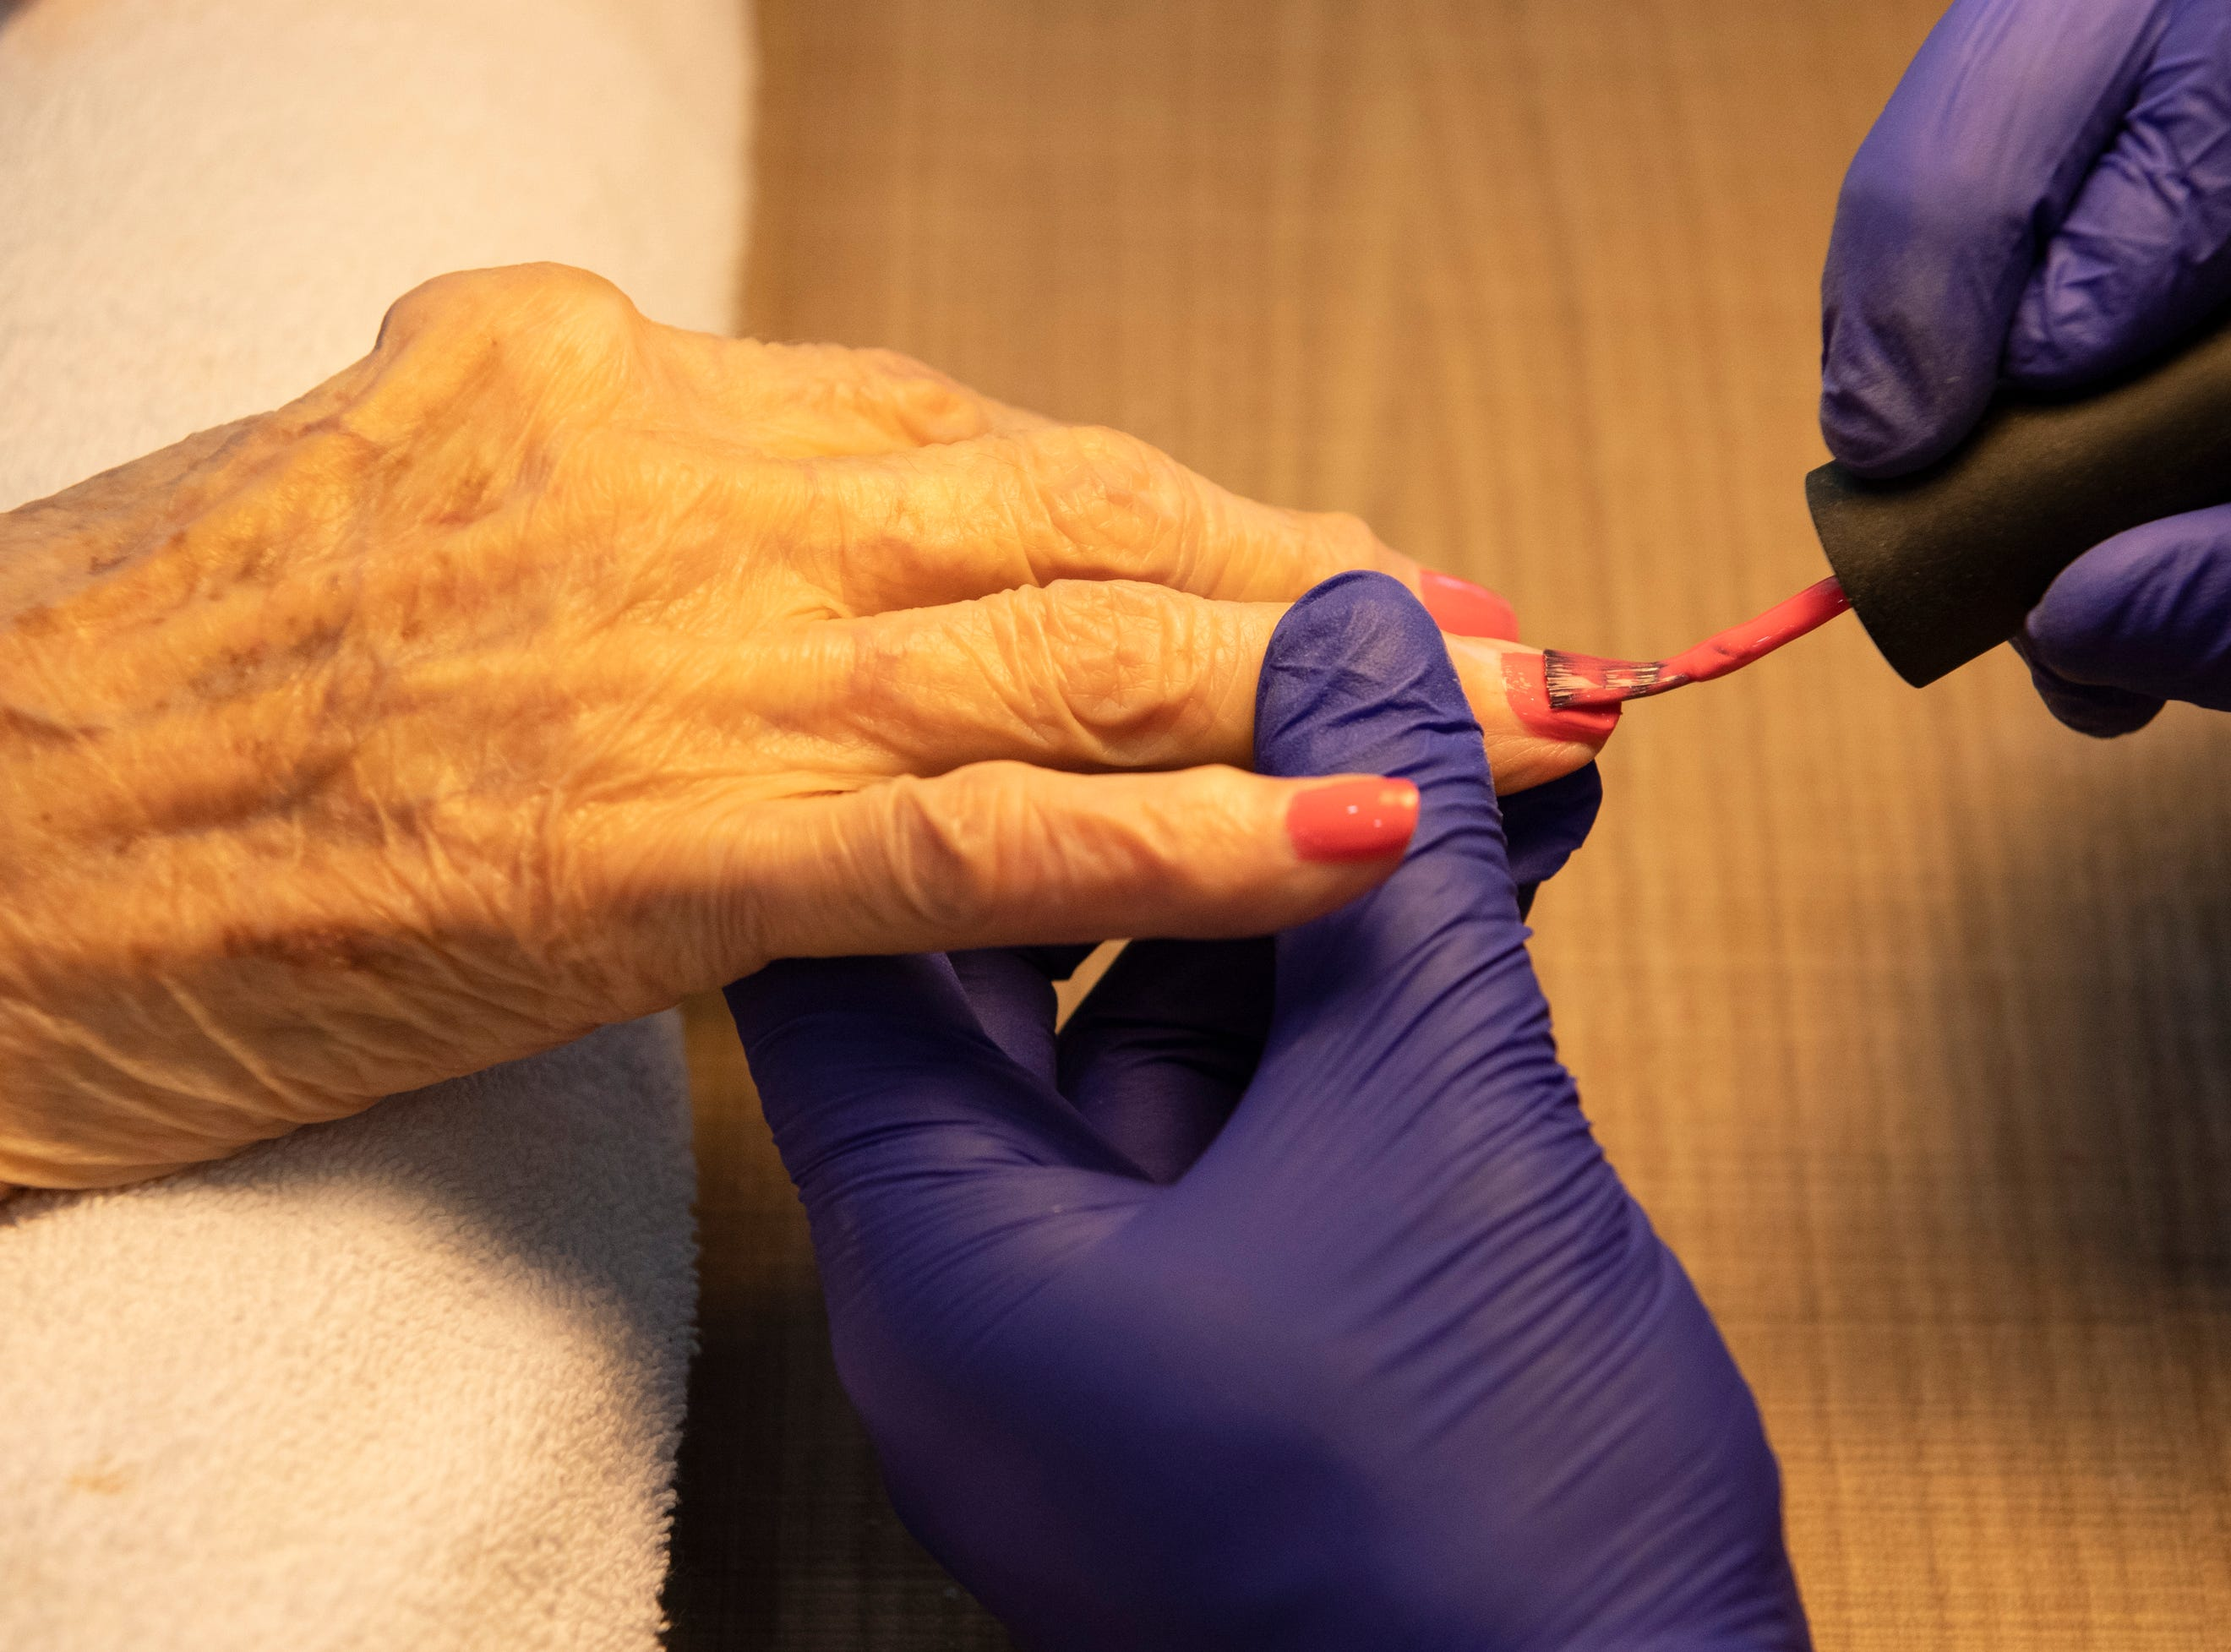 Santino Tedesco, director of community life at Waterston on Augusta, paints Meador Kennedy's nails Thursday, May 9, 2019. SYNERGY HomeCare of Greenville held a MotherÕs Day makeover party at the assisted living community.